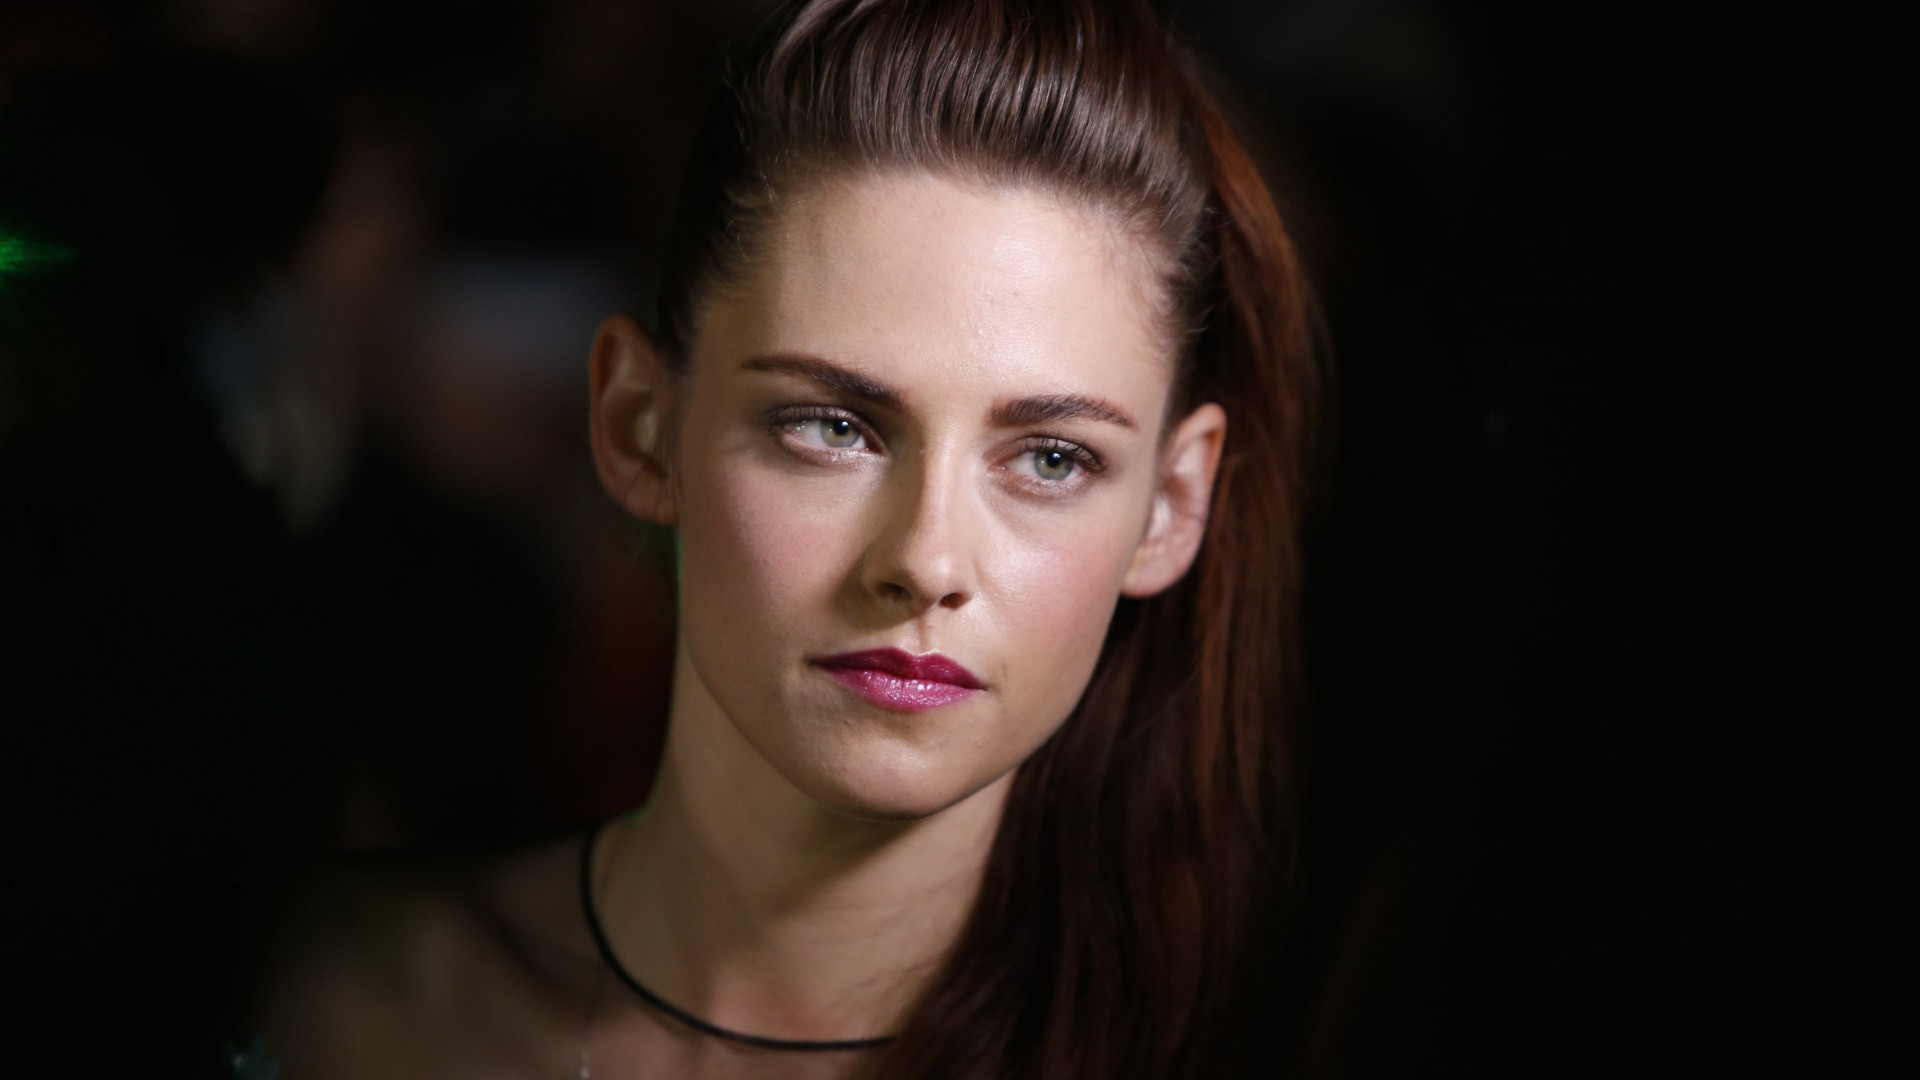 Kristen Stewart Wallpaper for Desktop 1920x1080